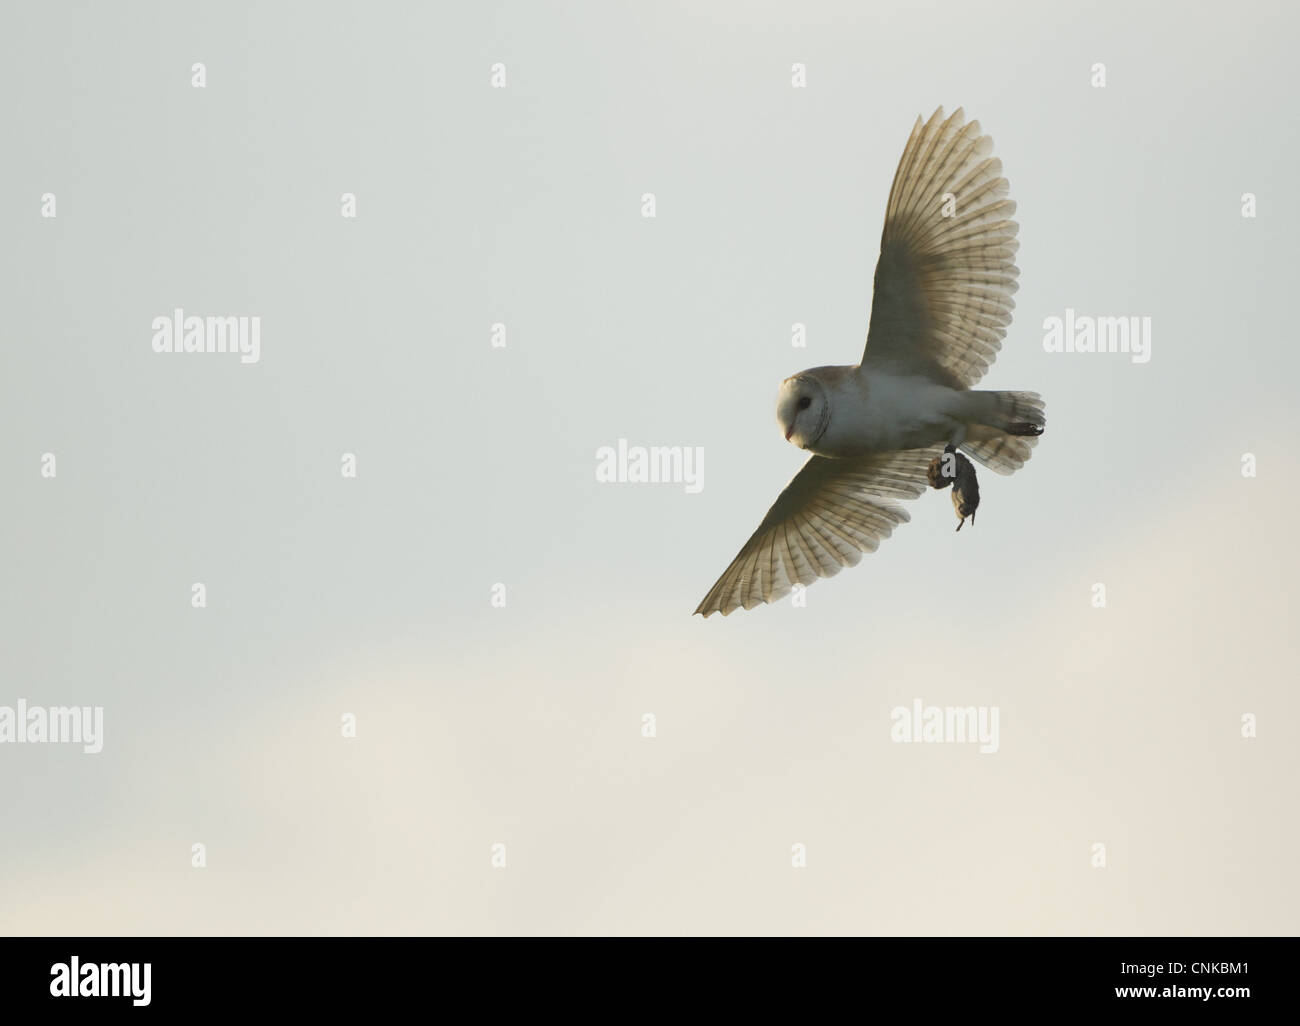 Barn Owl (Tyto alba) adult, in flight, with vole prey in talons, Derbyshire, England, june - Stock Image